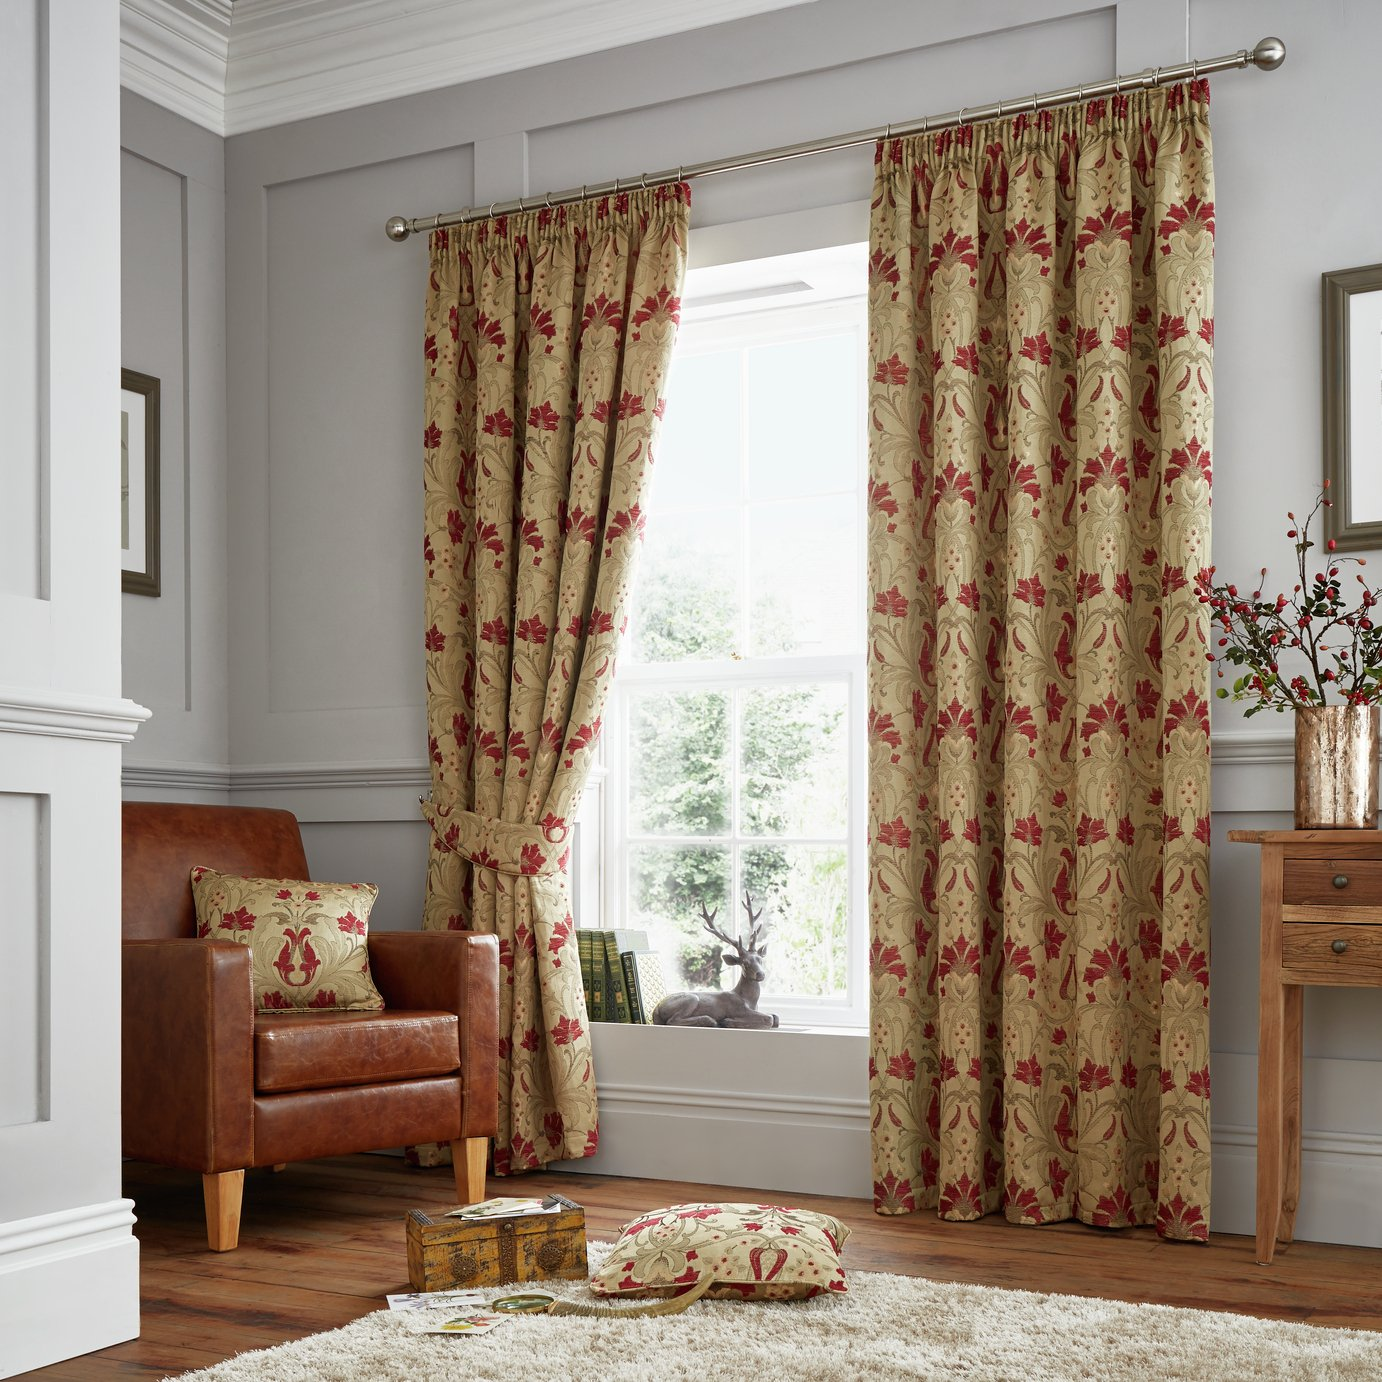 Image of Curtina Burford Curtains - 229x183cm - Red and Gold